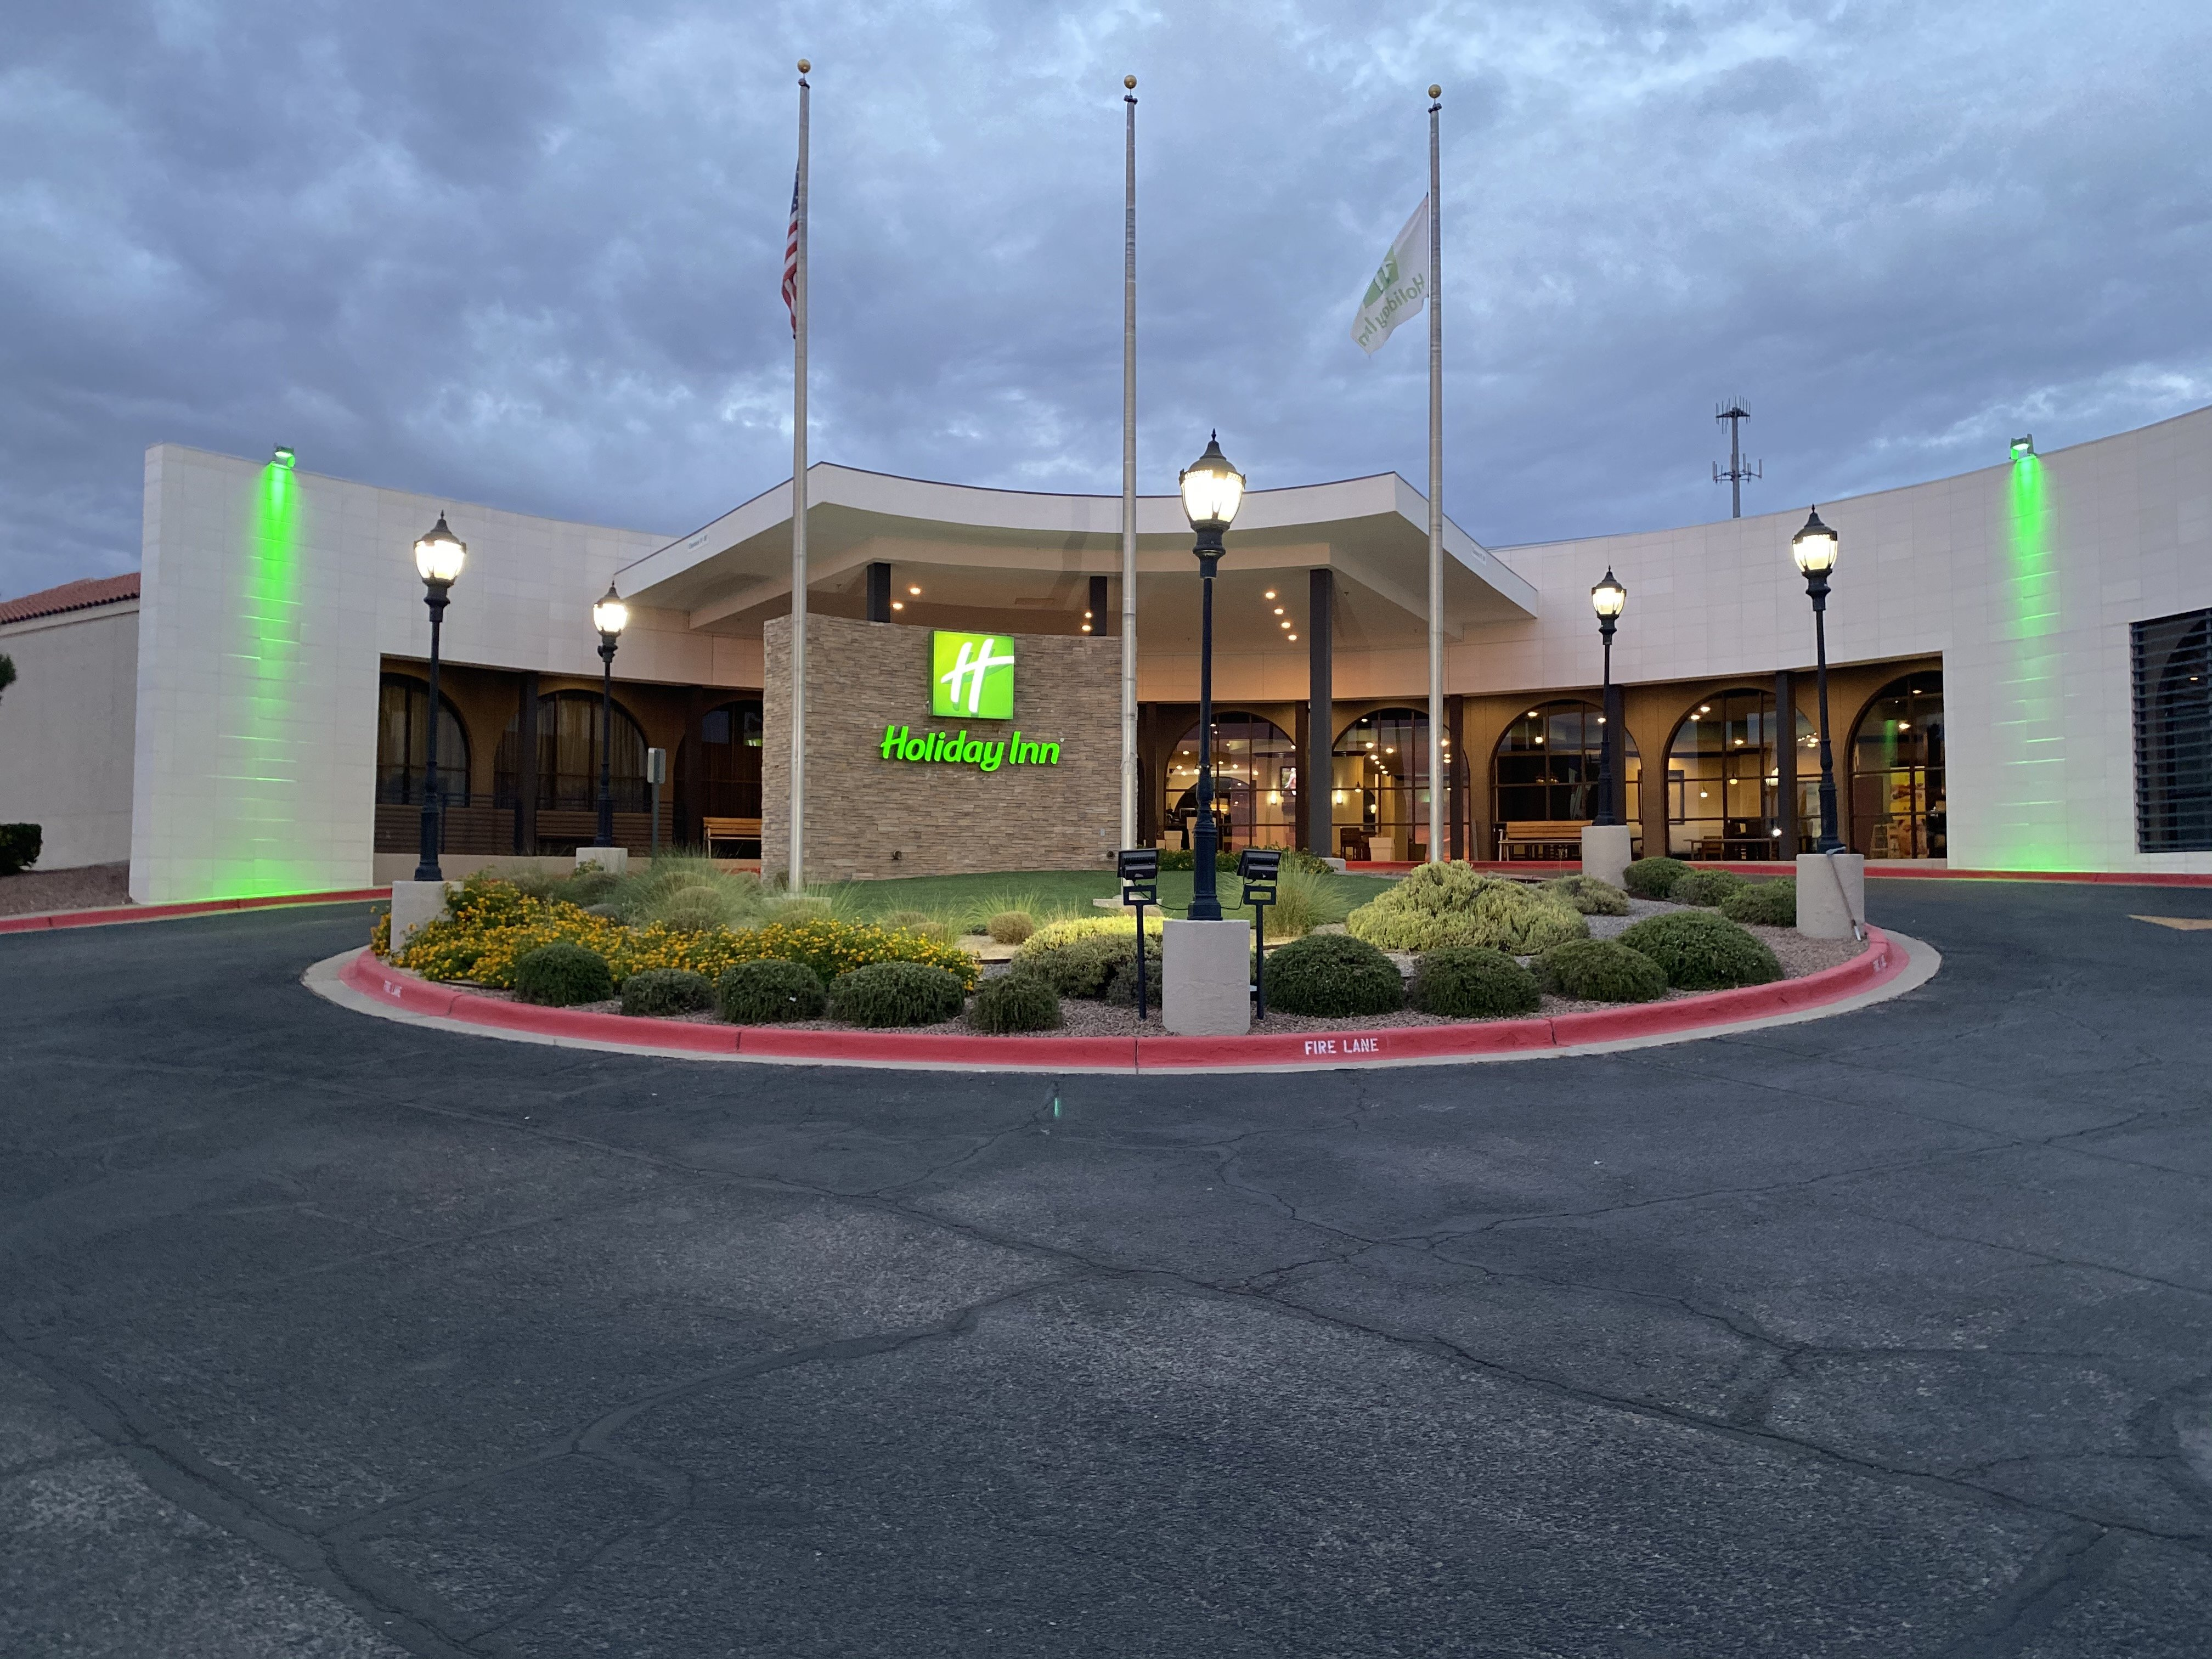 Holiday Inn West Sunland Park